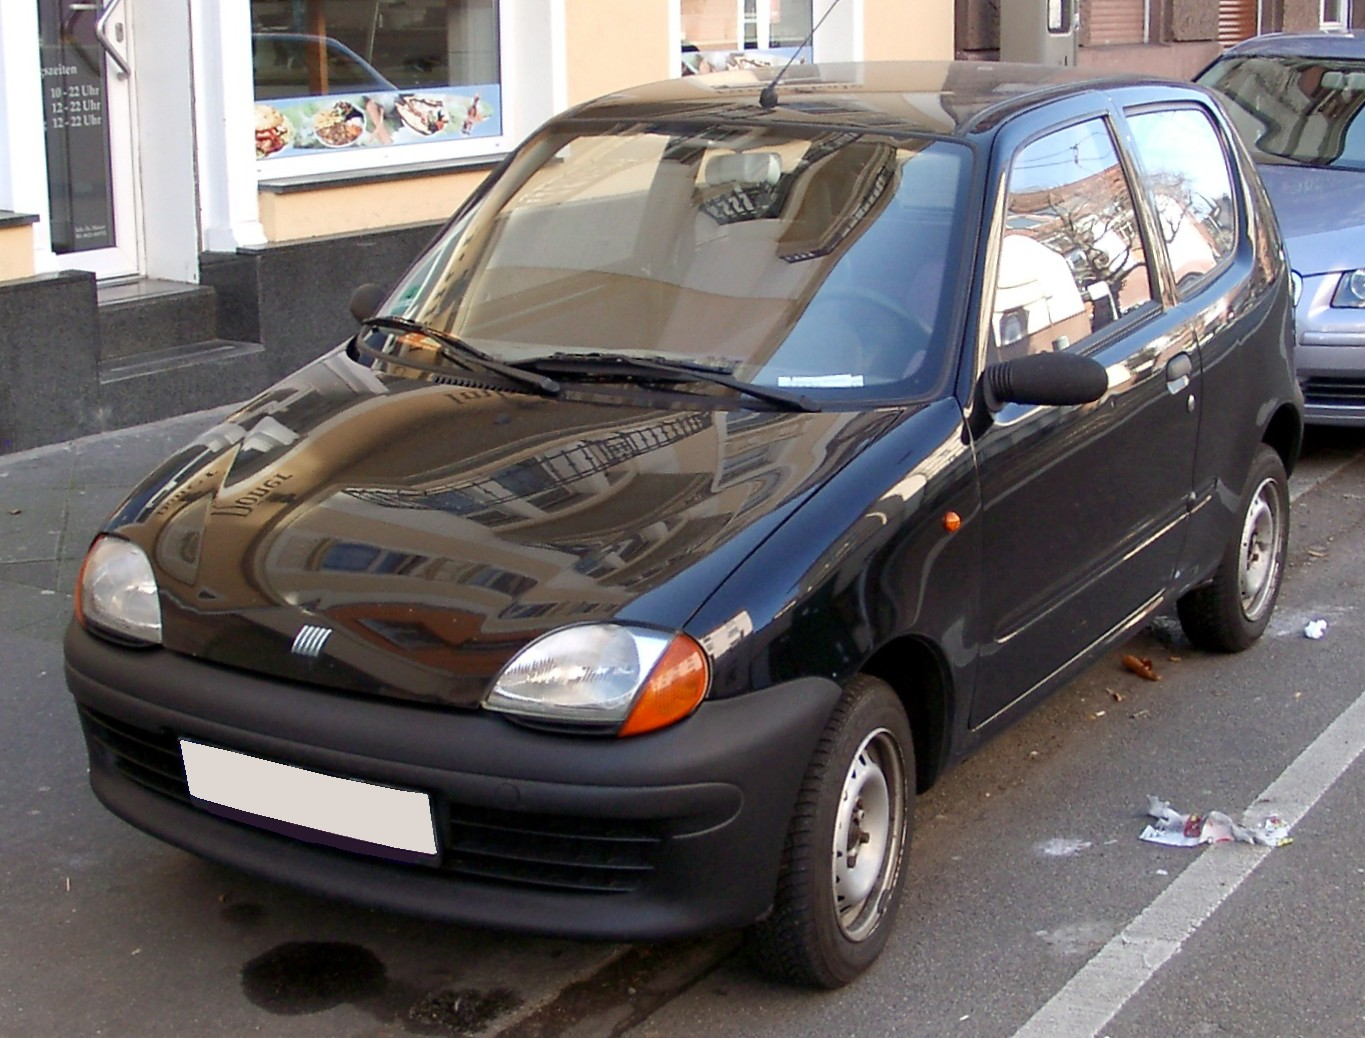 seicento this yard saw fiat sporting last scrap vagdave flickr weeke b by photos in a